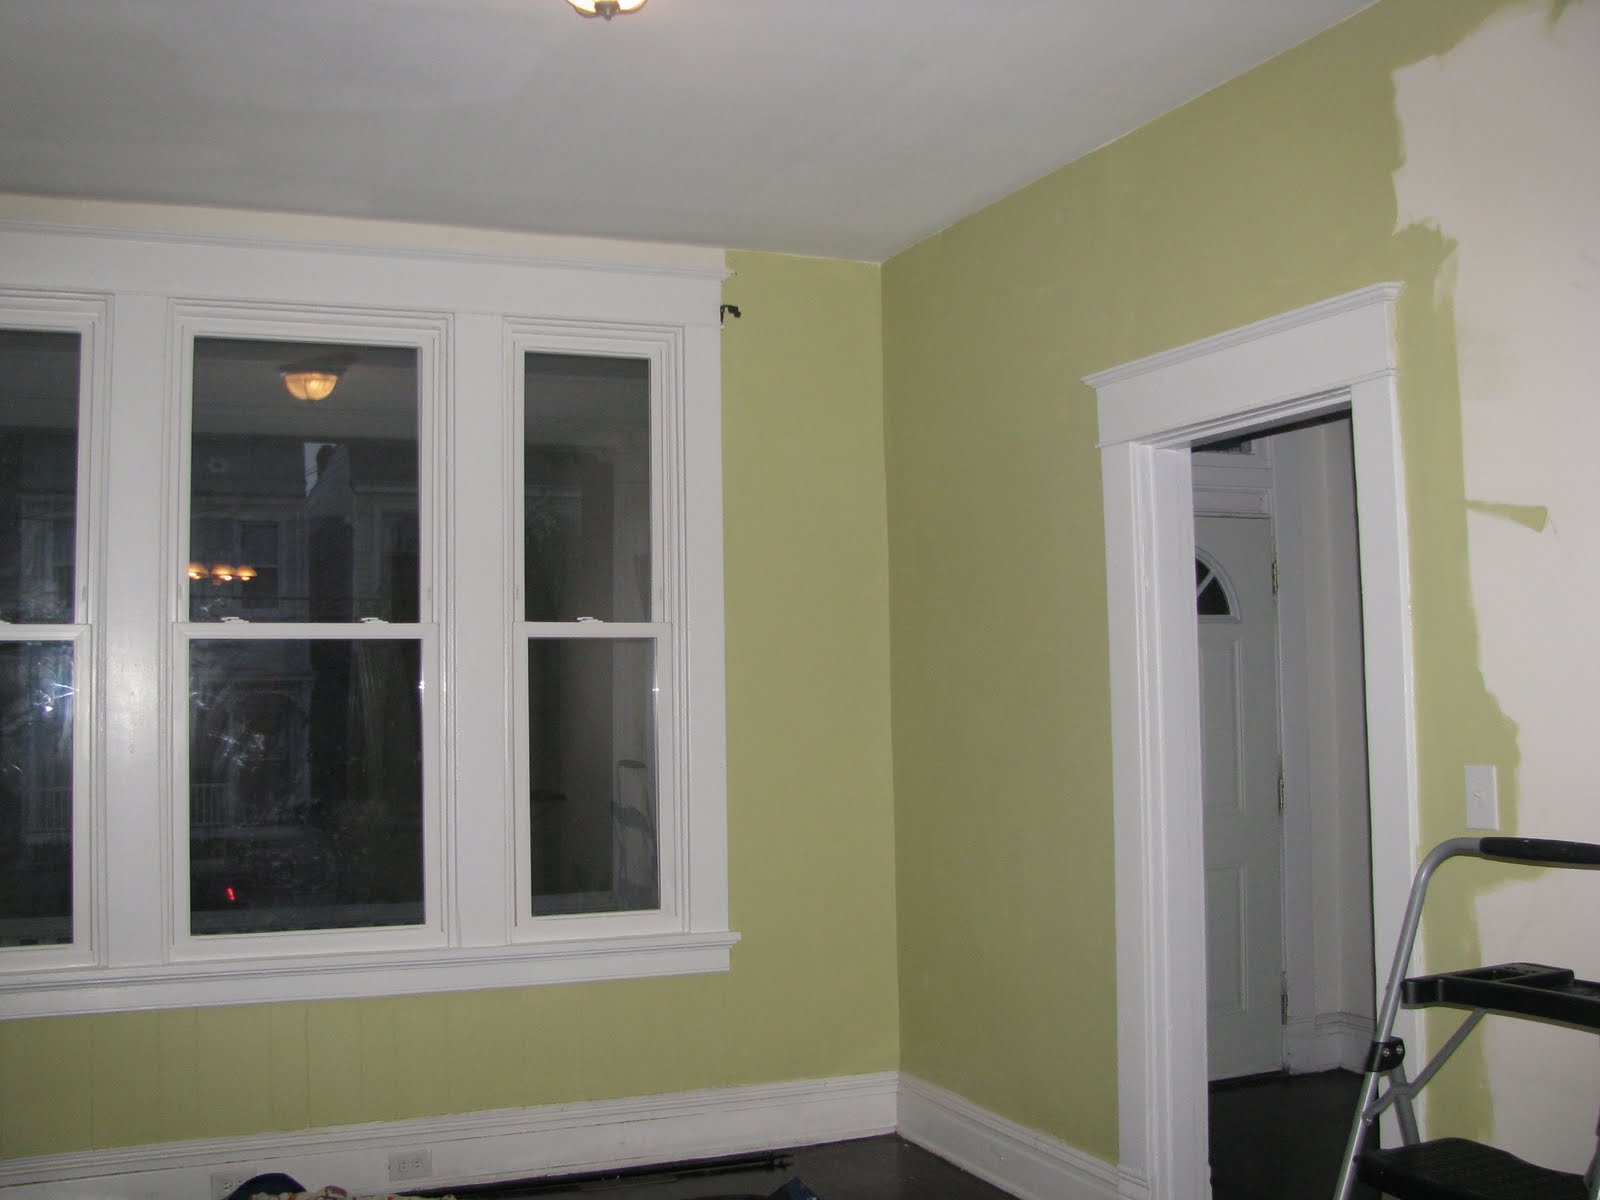 New living room color using valspars olive marinade